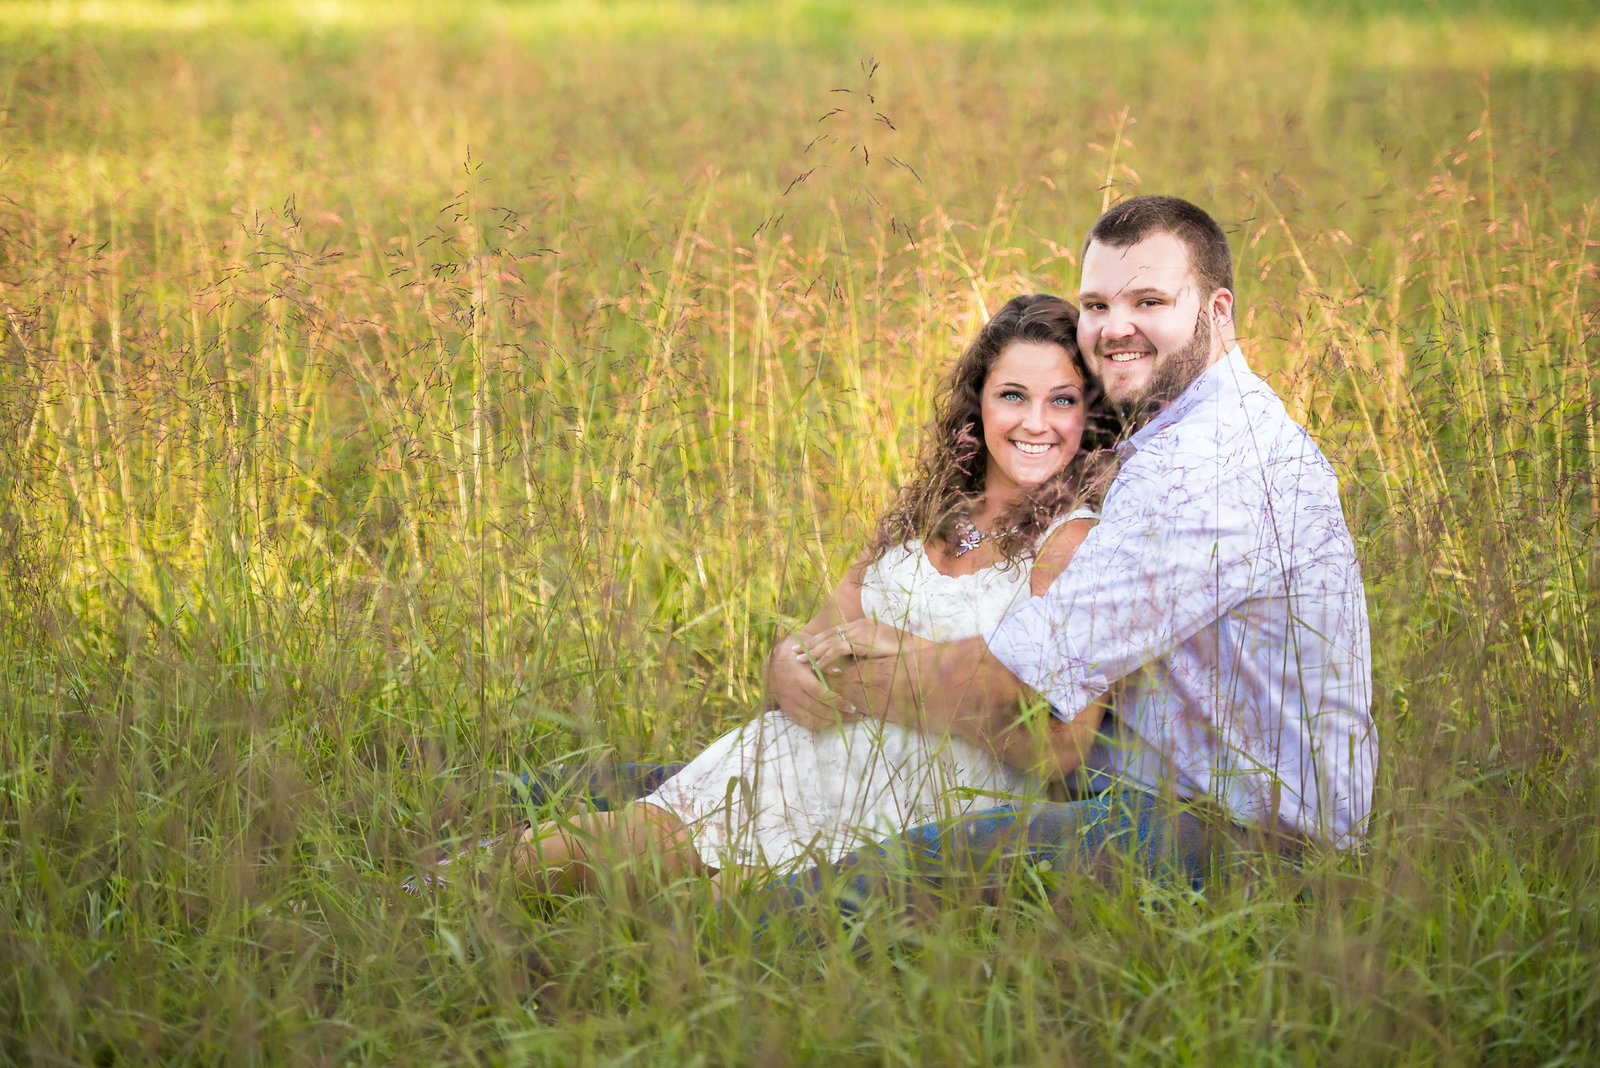 NJ_Rustic_Engagement_Photography021